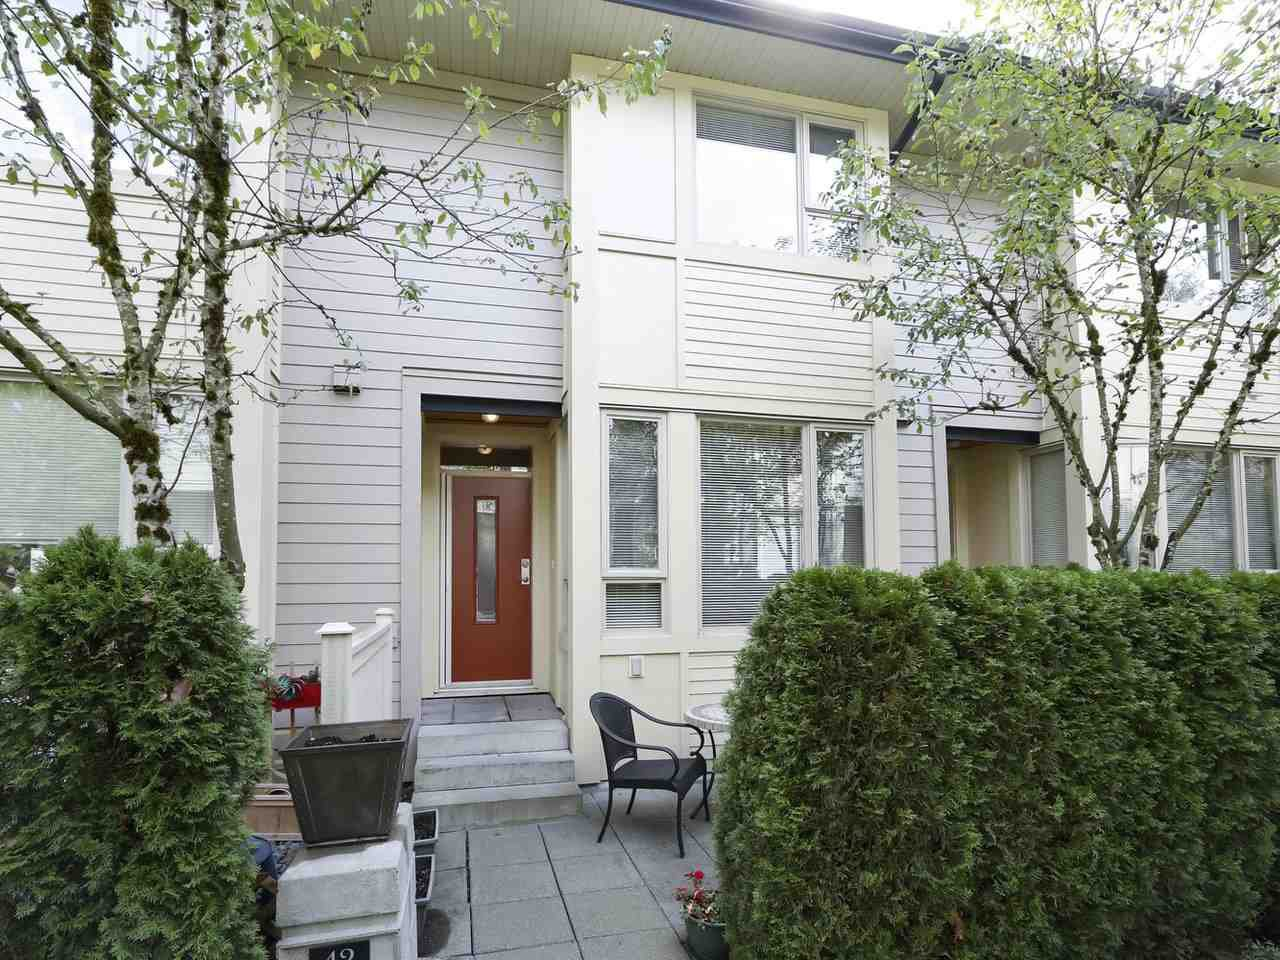 """Main Photo: 42 9229 UNIVERSITY Crescent in Burnaby: Simon Fraser Univer. Townhouse for sale in """"SERENITY"""" (Burnaby North)  : MLS®# R2403923"""